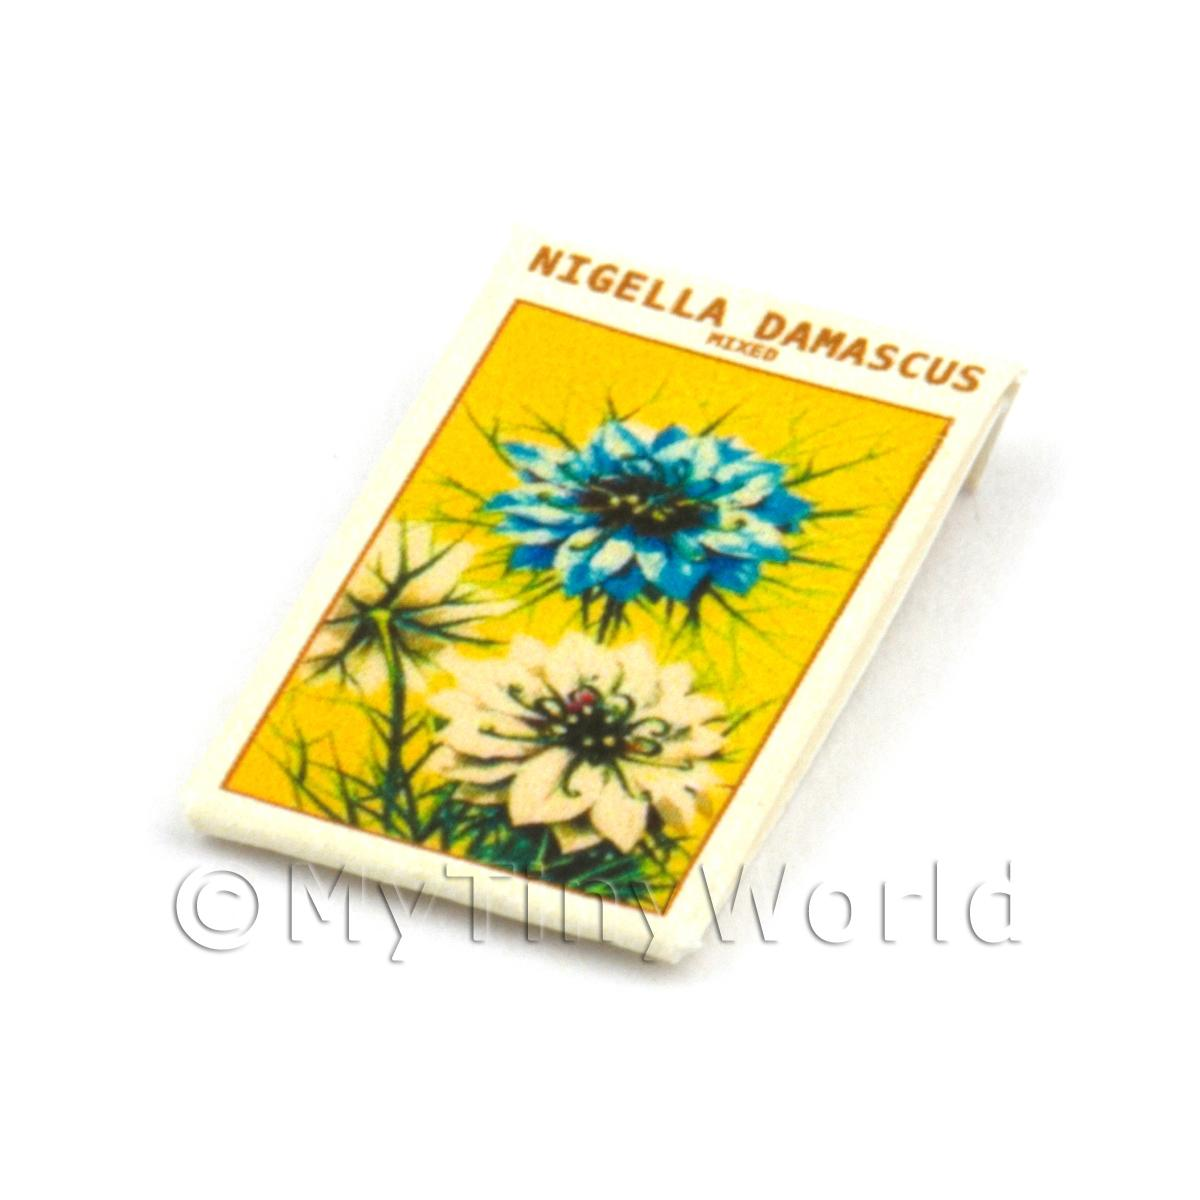 Dolls House Flower Seed Packet - Nigella Damascus